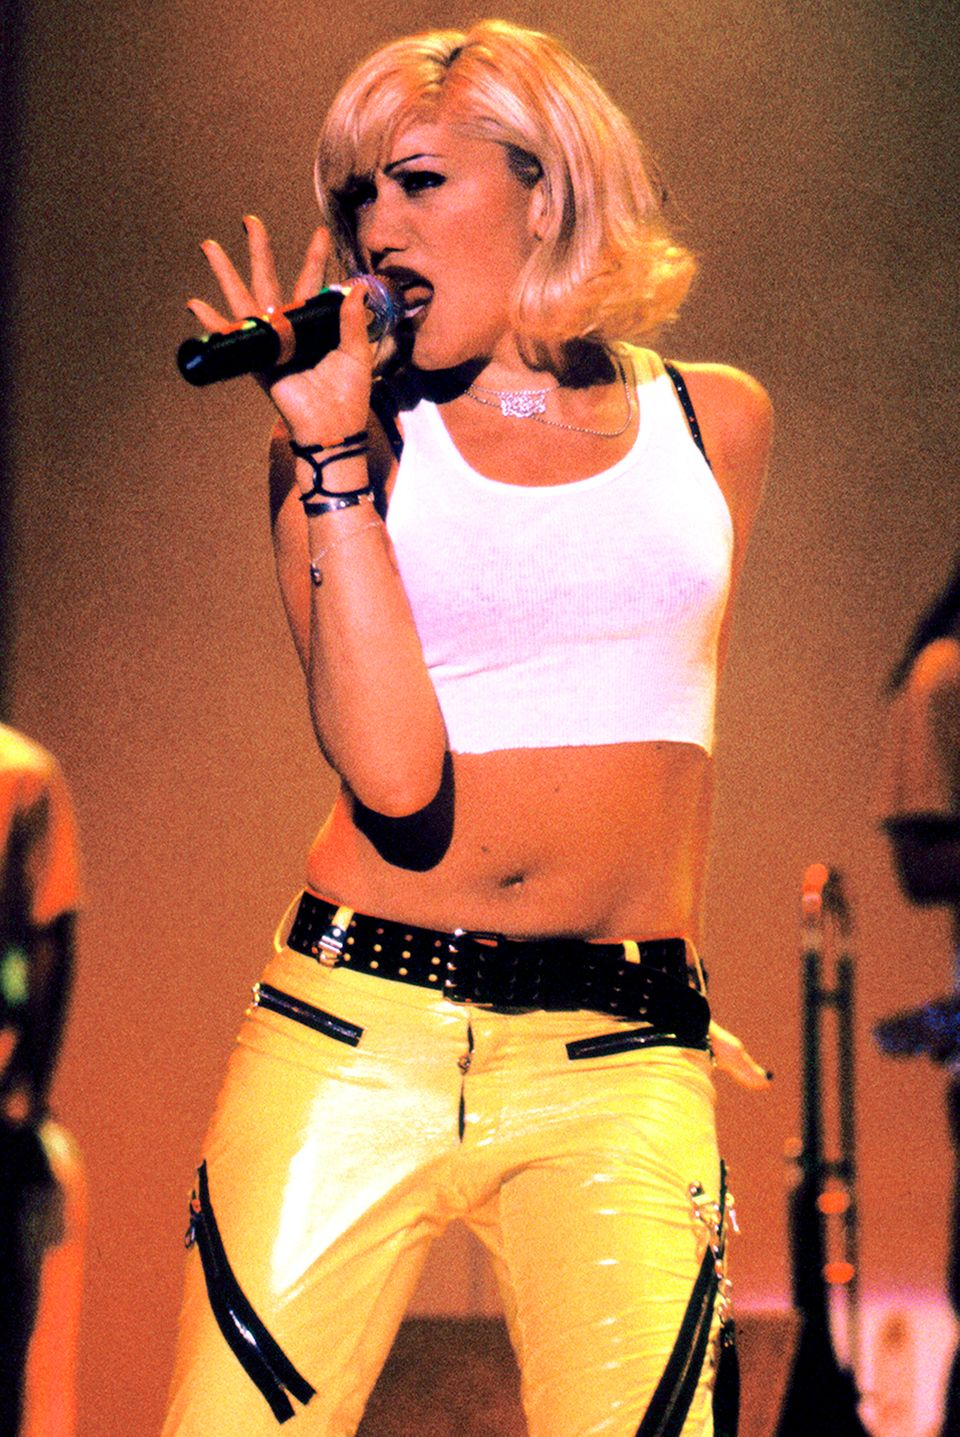 MOUNTAIN VIEW, CA - JUNE 14: Gwen Stefani of No Doubt performs Live 105's BFD 1996 at Shoreline Amphitheatre on June 14, 1996